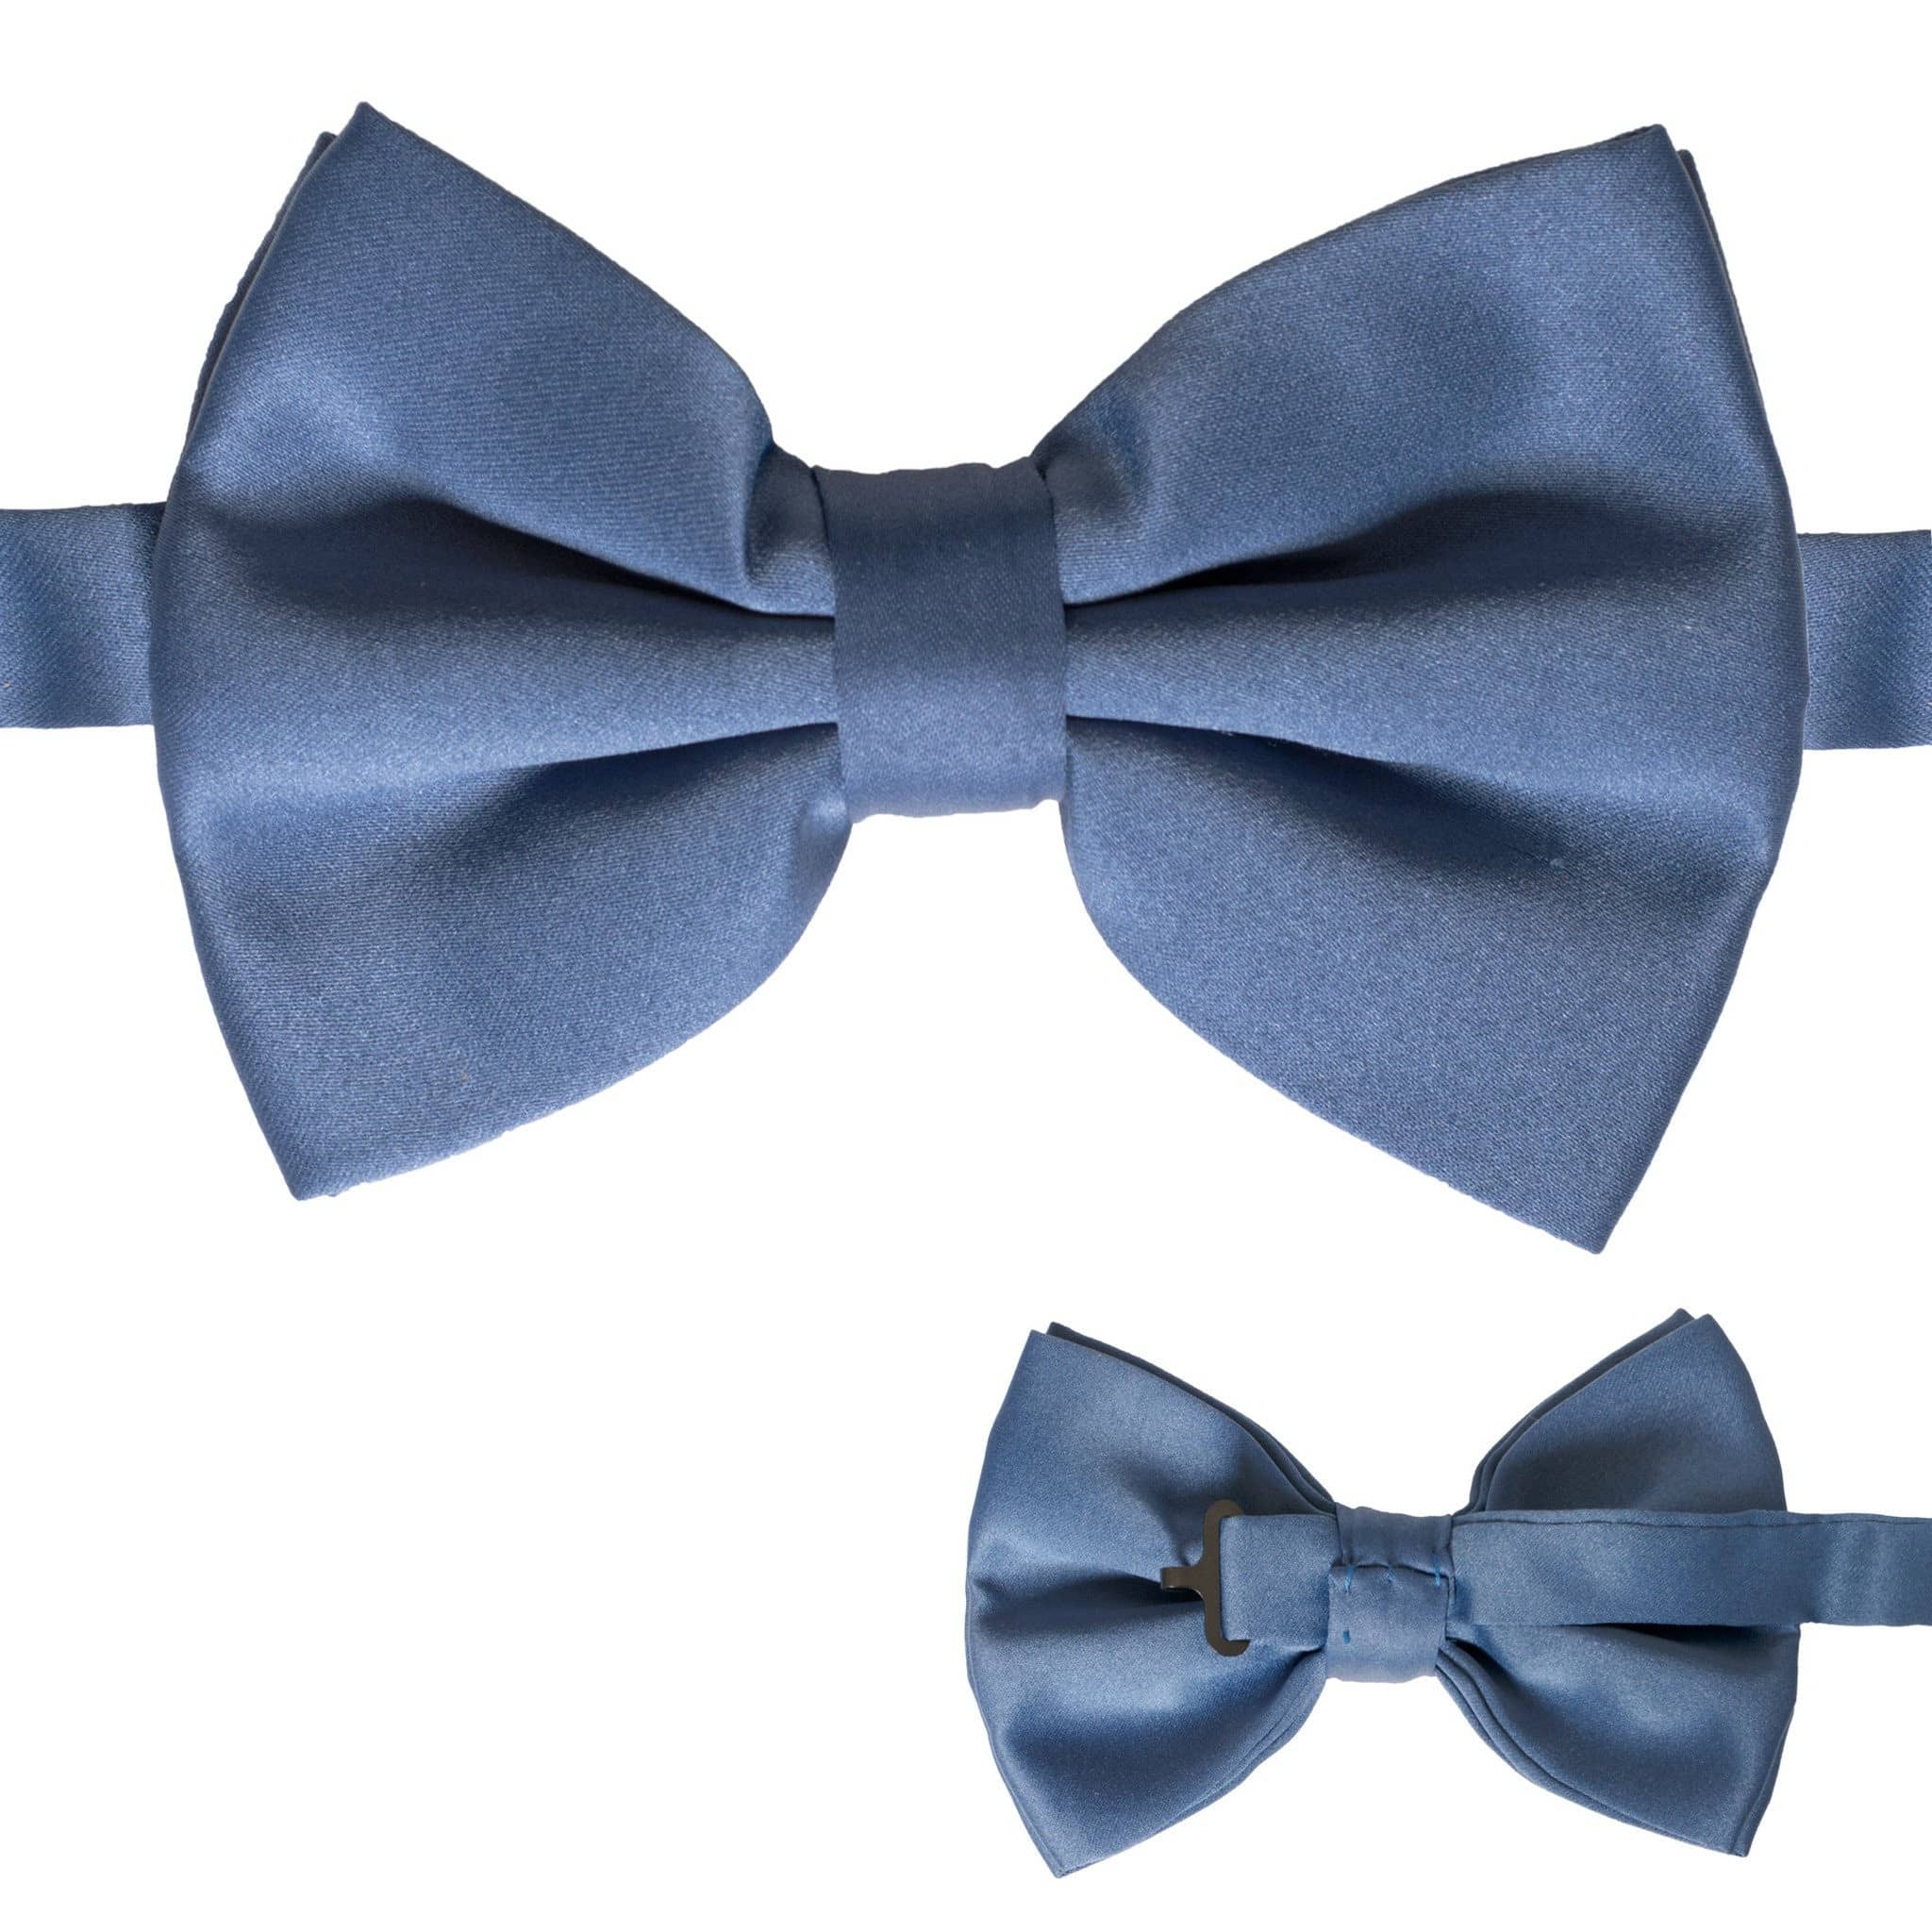 Axis Navy Blue Adjustable Satin Bowtie